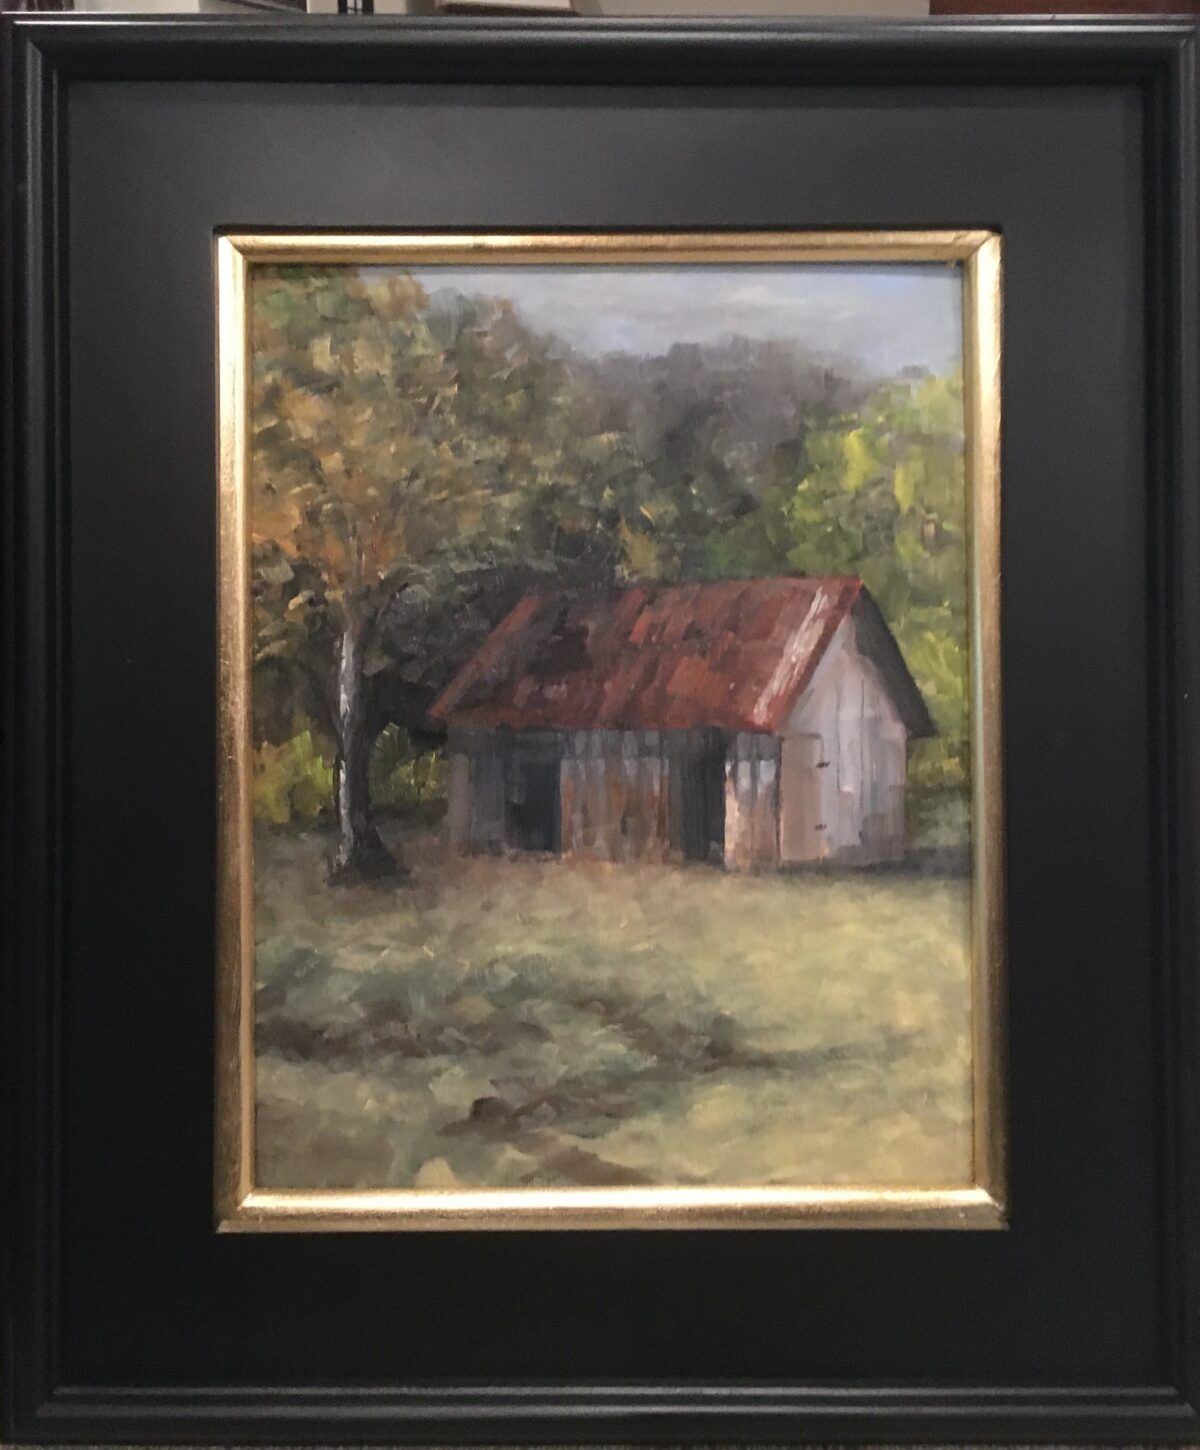 164 - Brown County Cabin - 14 x 11 - Architecture - $450 - Not Available